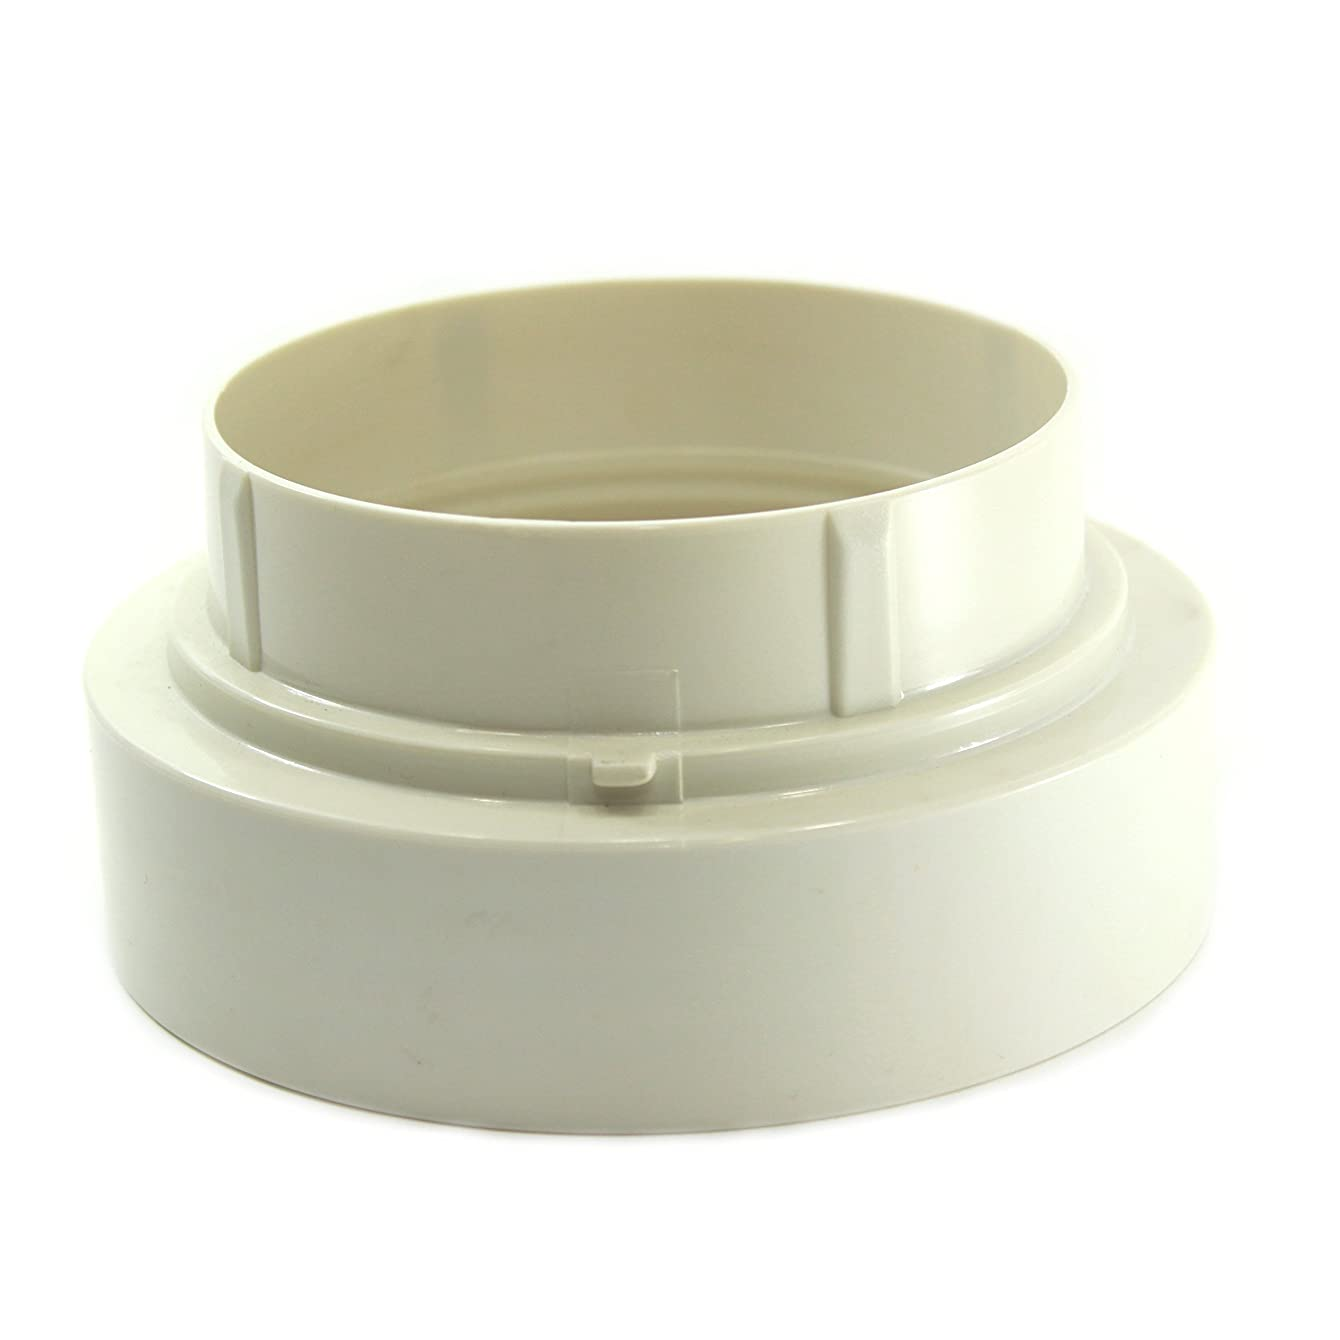 HOMECOMFORT Portable Air Conditioner Exhaust Hose Connector